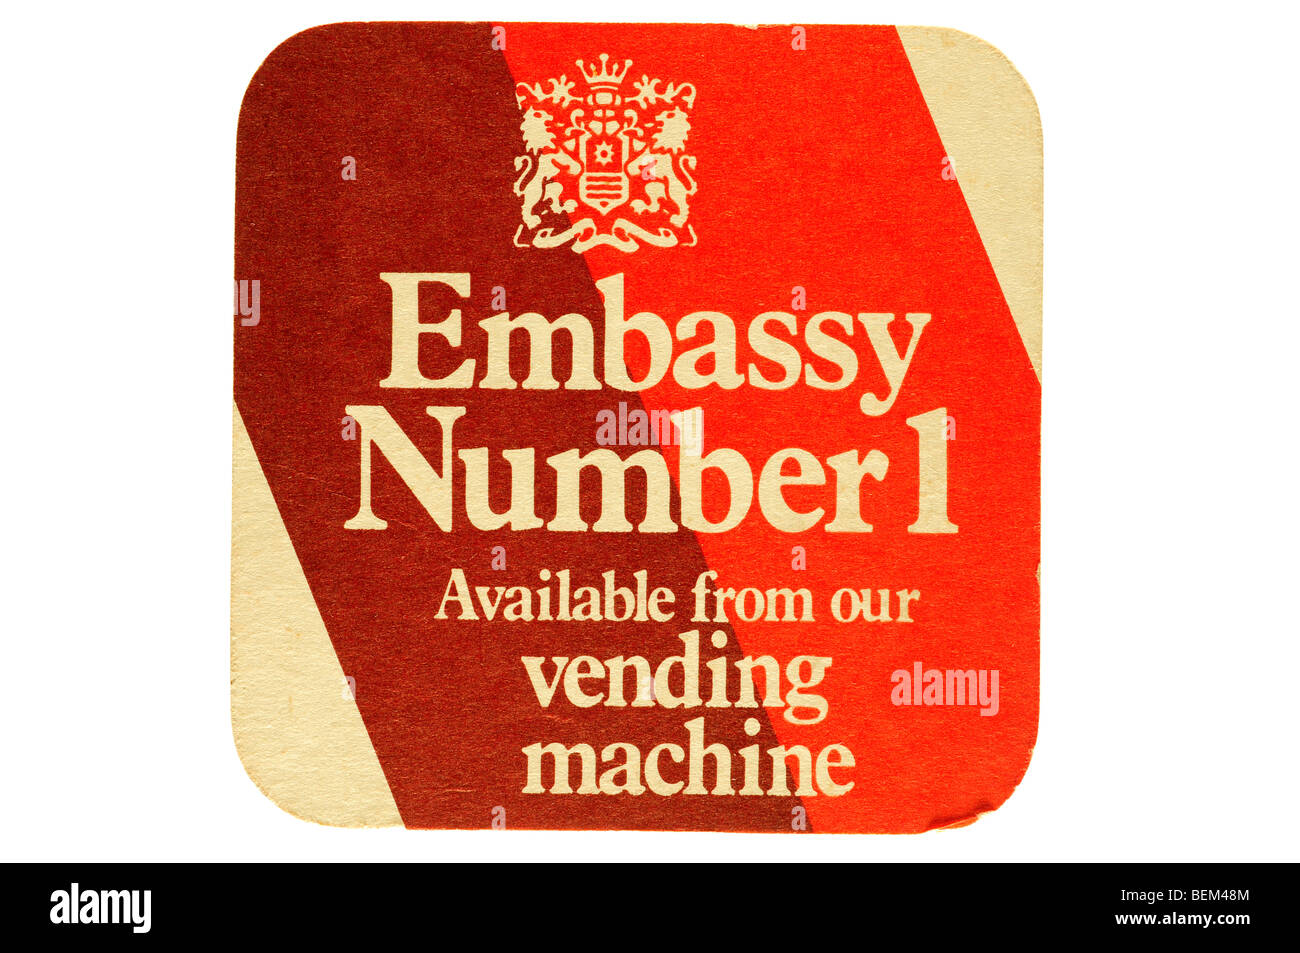 embassy number 1 available from our vending machine - Stock Image